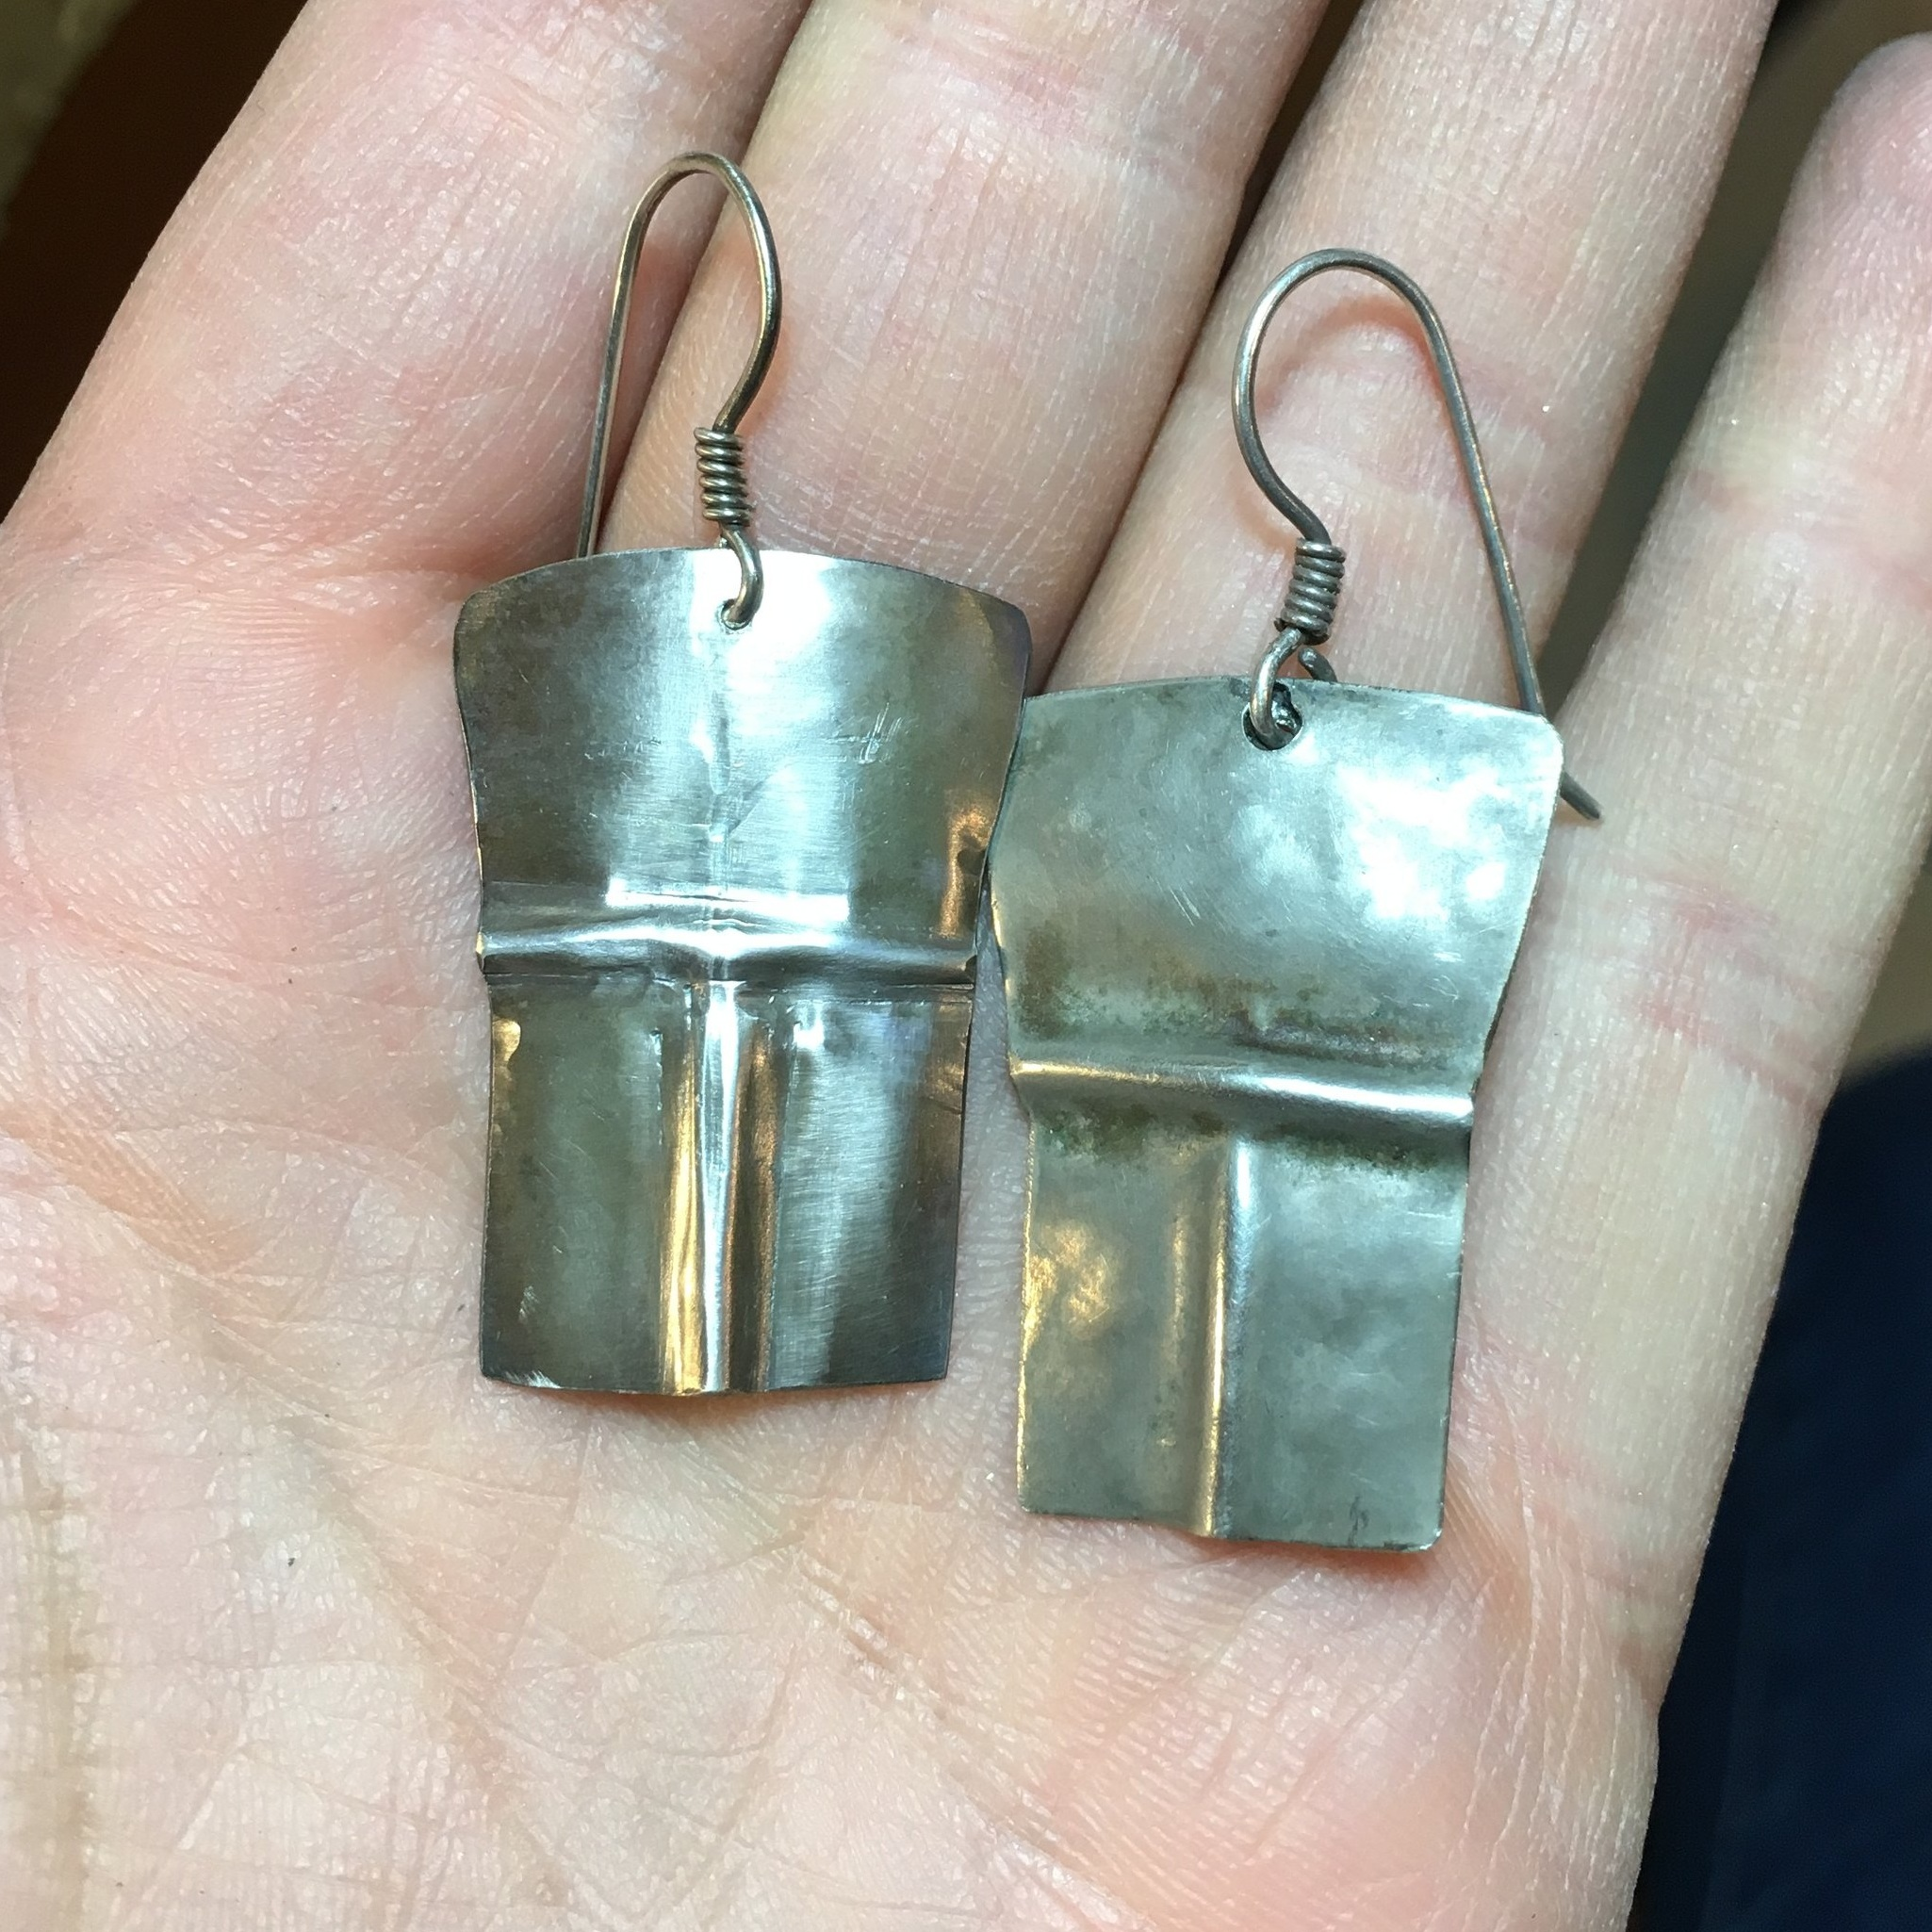 Re-created a lost sterling silver earring (original one on the right)